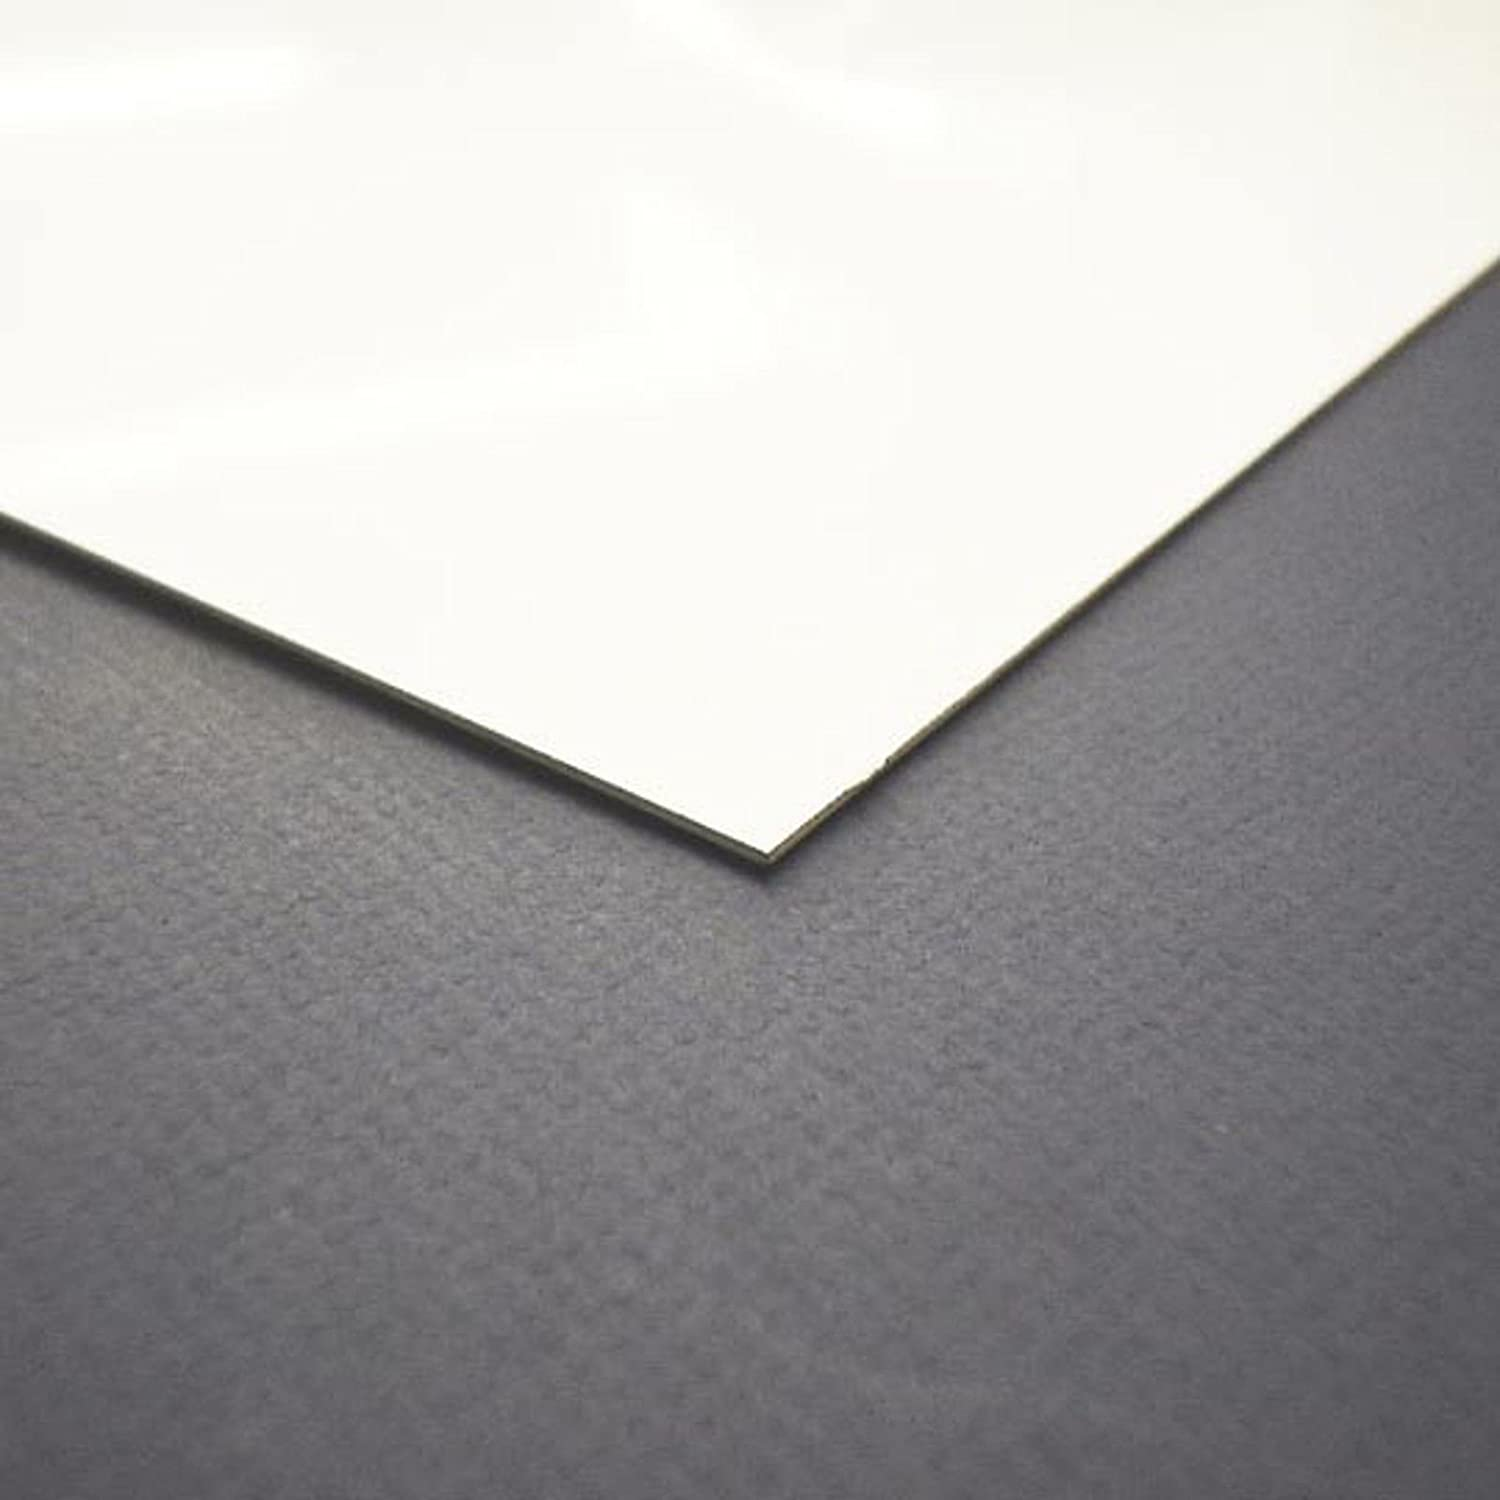 1220mm x 2440mm PVC wall cladding sheets in white satin 8/' x 4/' x 2mm thick